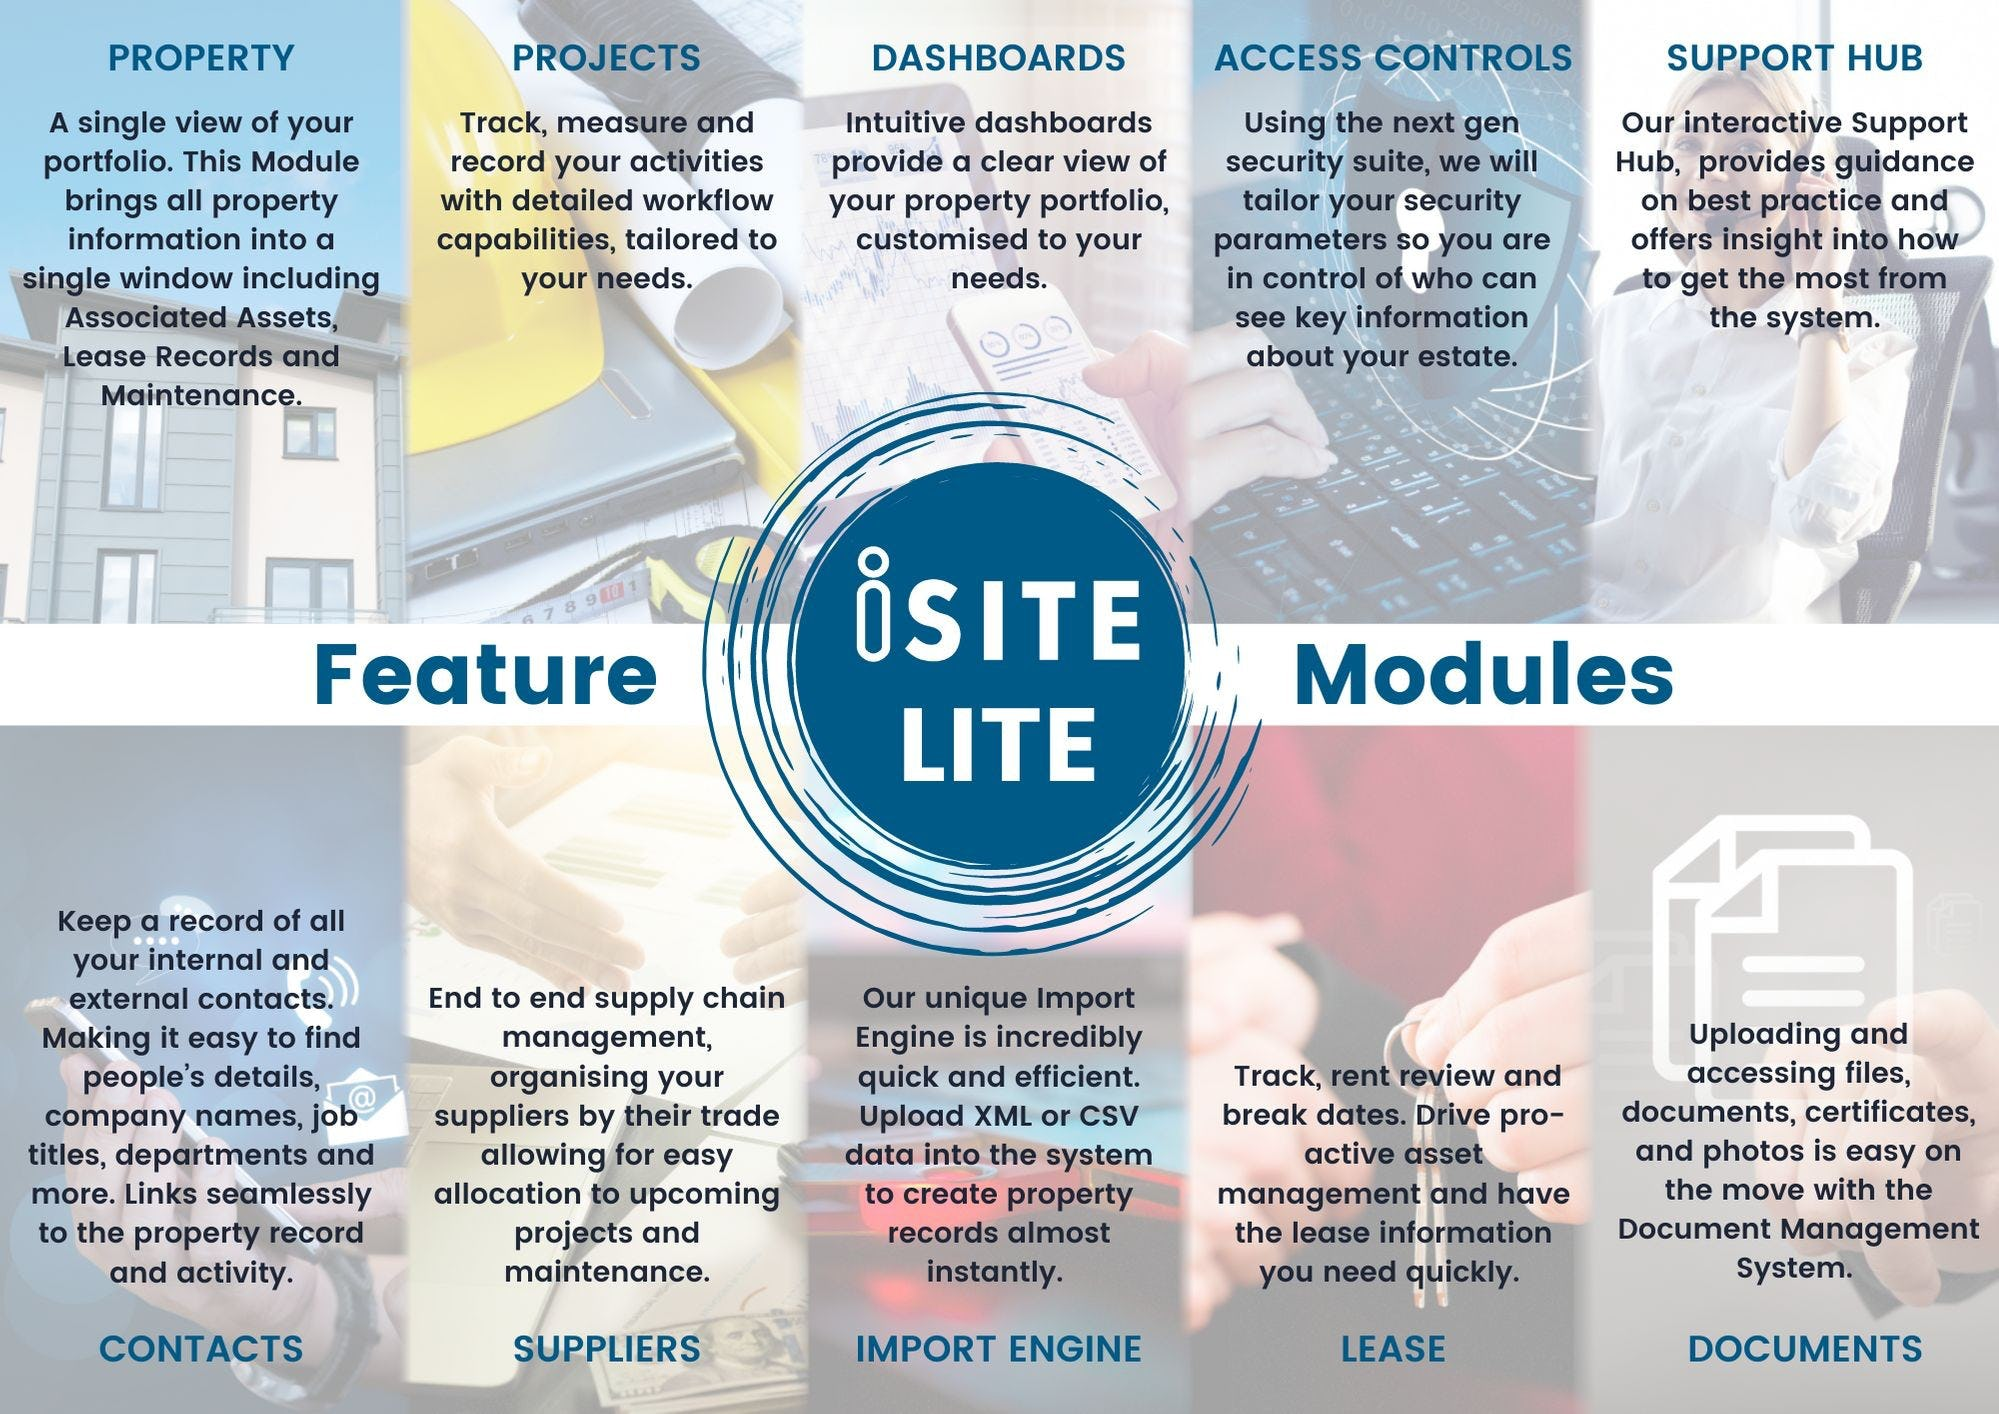 iSite Lite Software - Featured modules of iSite Lite